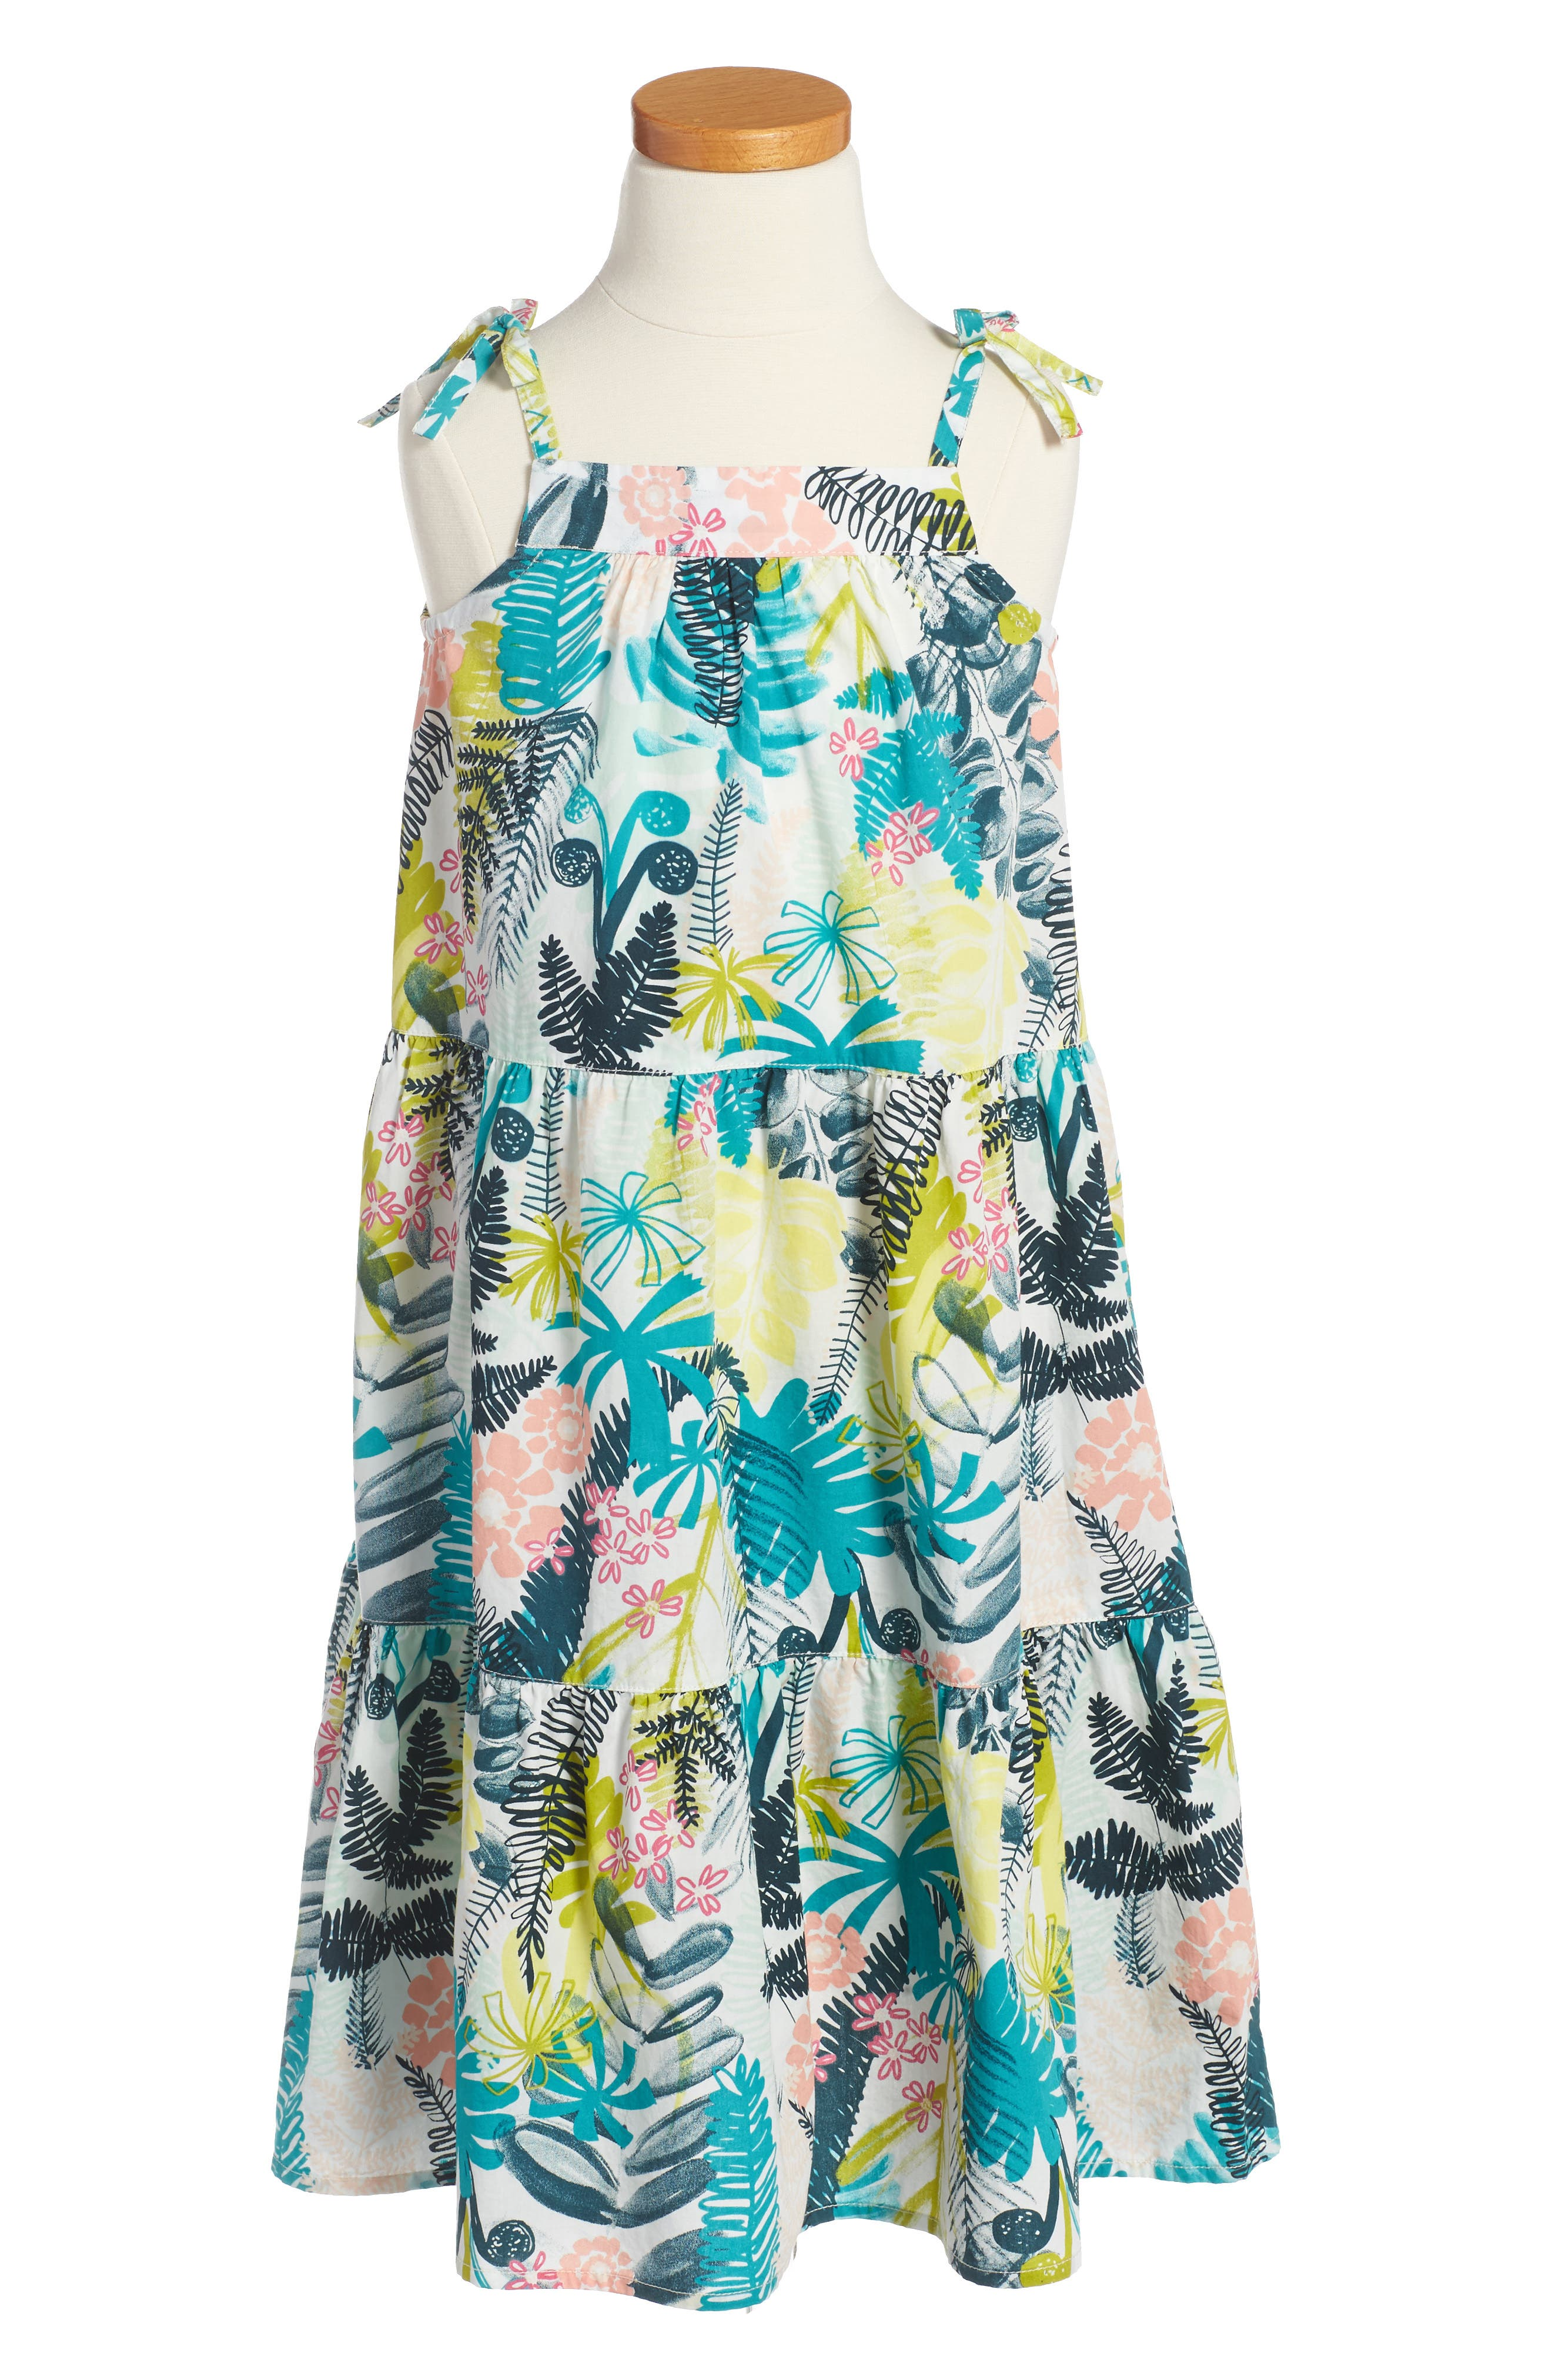 Wujal Wujal Print Tiered Sundress,                         Main,                         color,